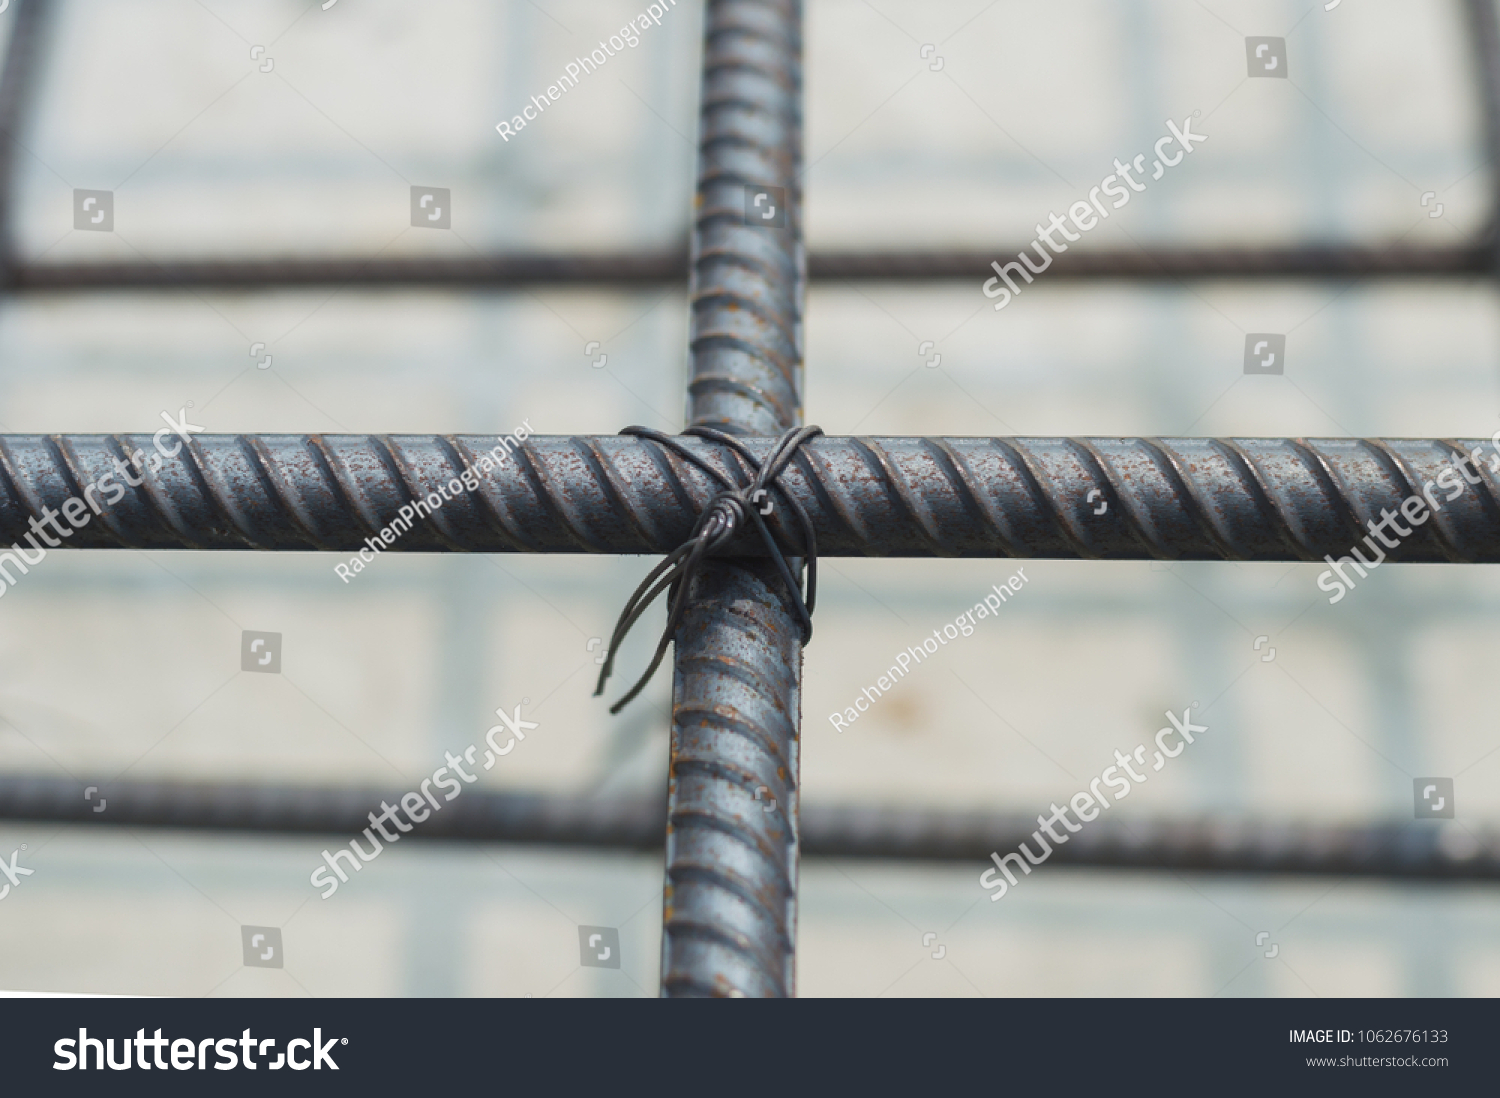 Magnificent Tie Wire For Rebar Illustration - Schematic diagram and ...